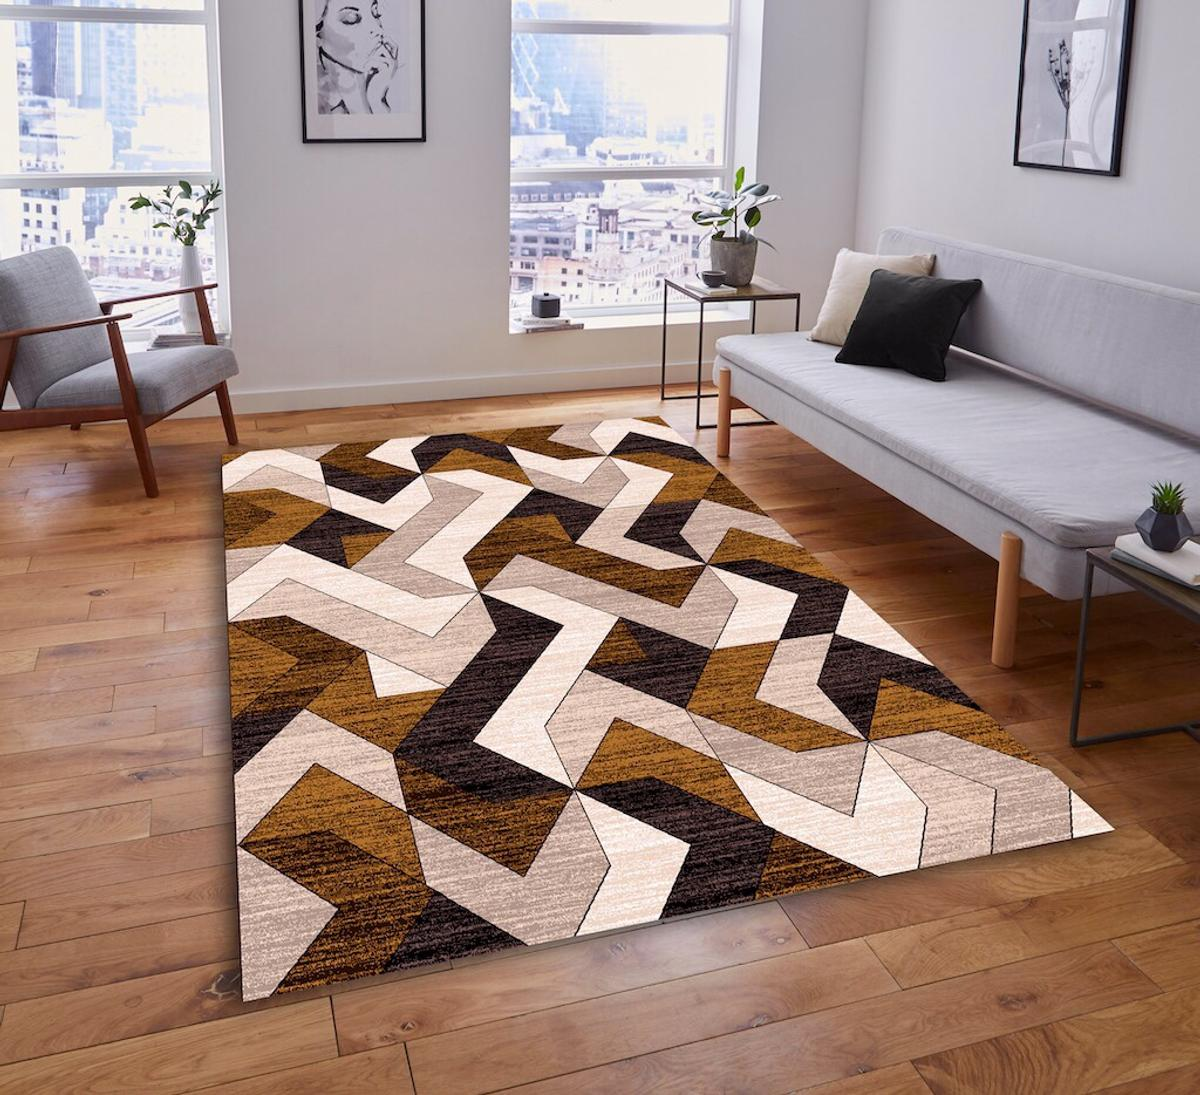 Modern living room rugs soft quality red in London für £ 49 ...